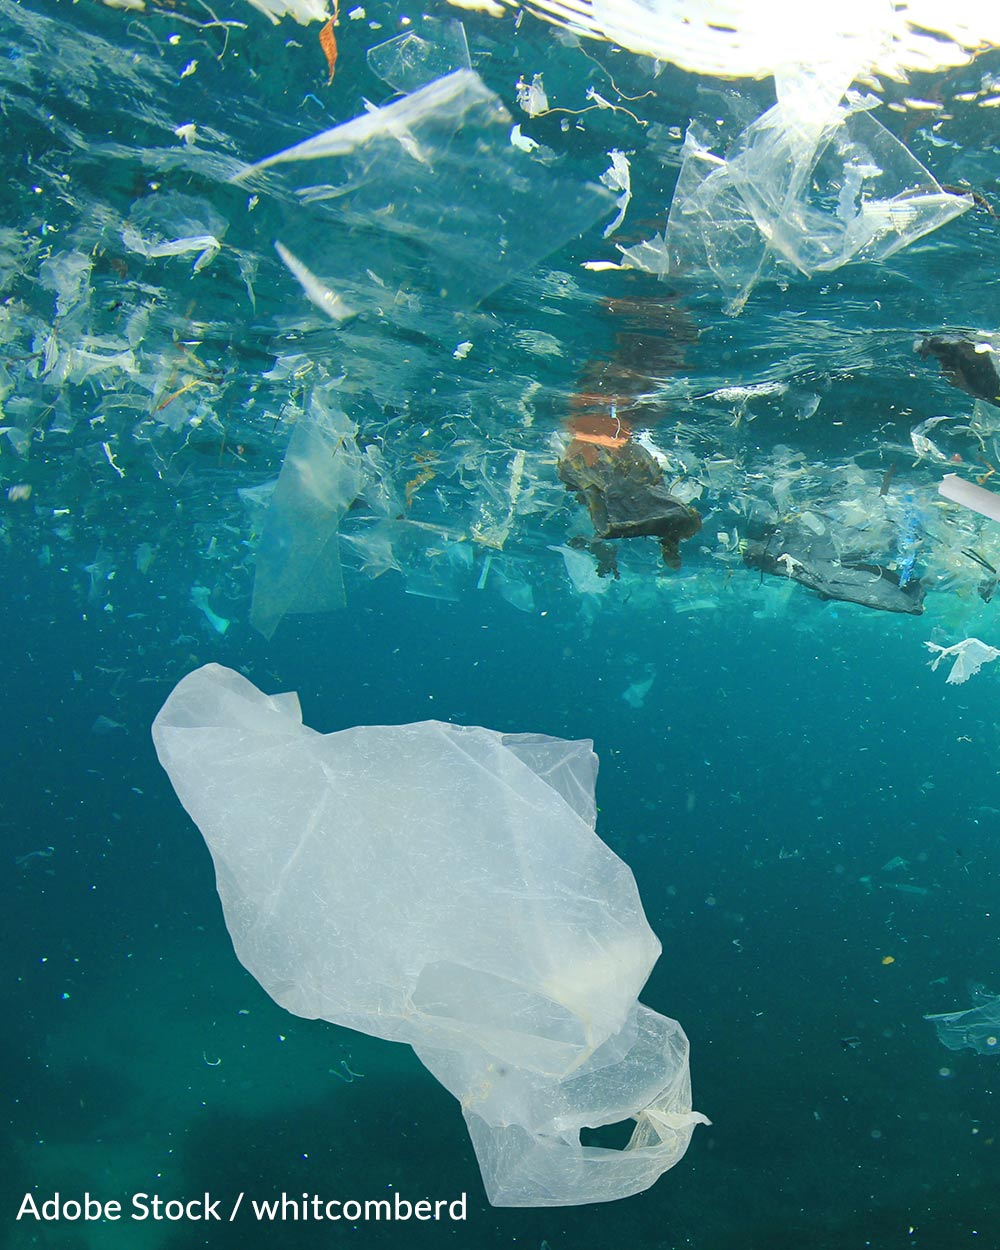 Plastic bags pose a serious threat to marine life.